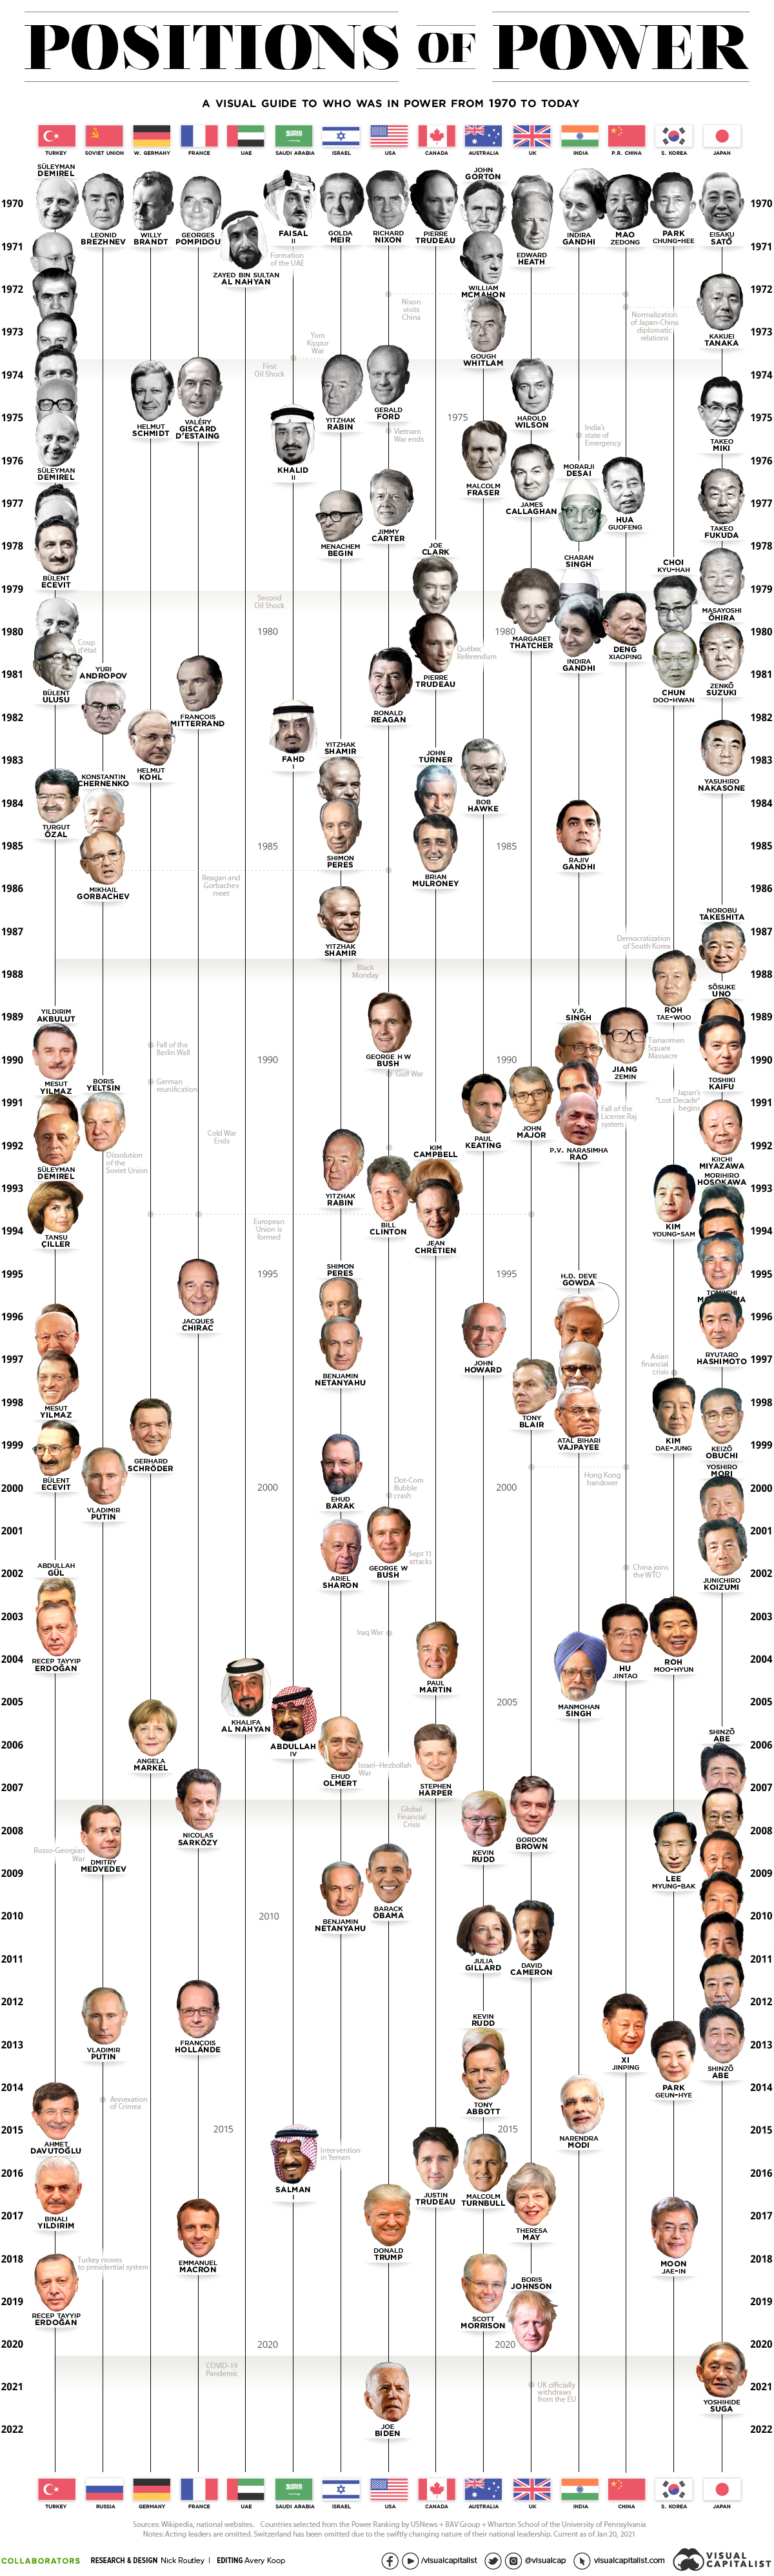 A Visual Guide to Positions of Power (1970-Today)